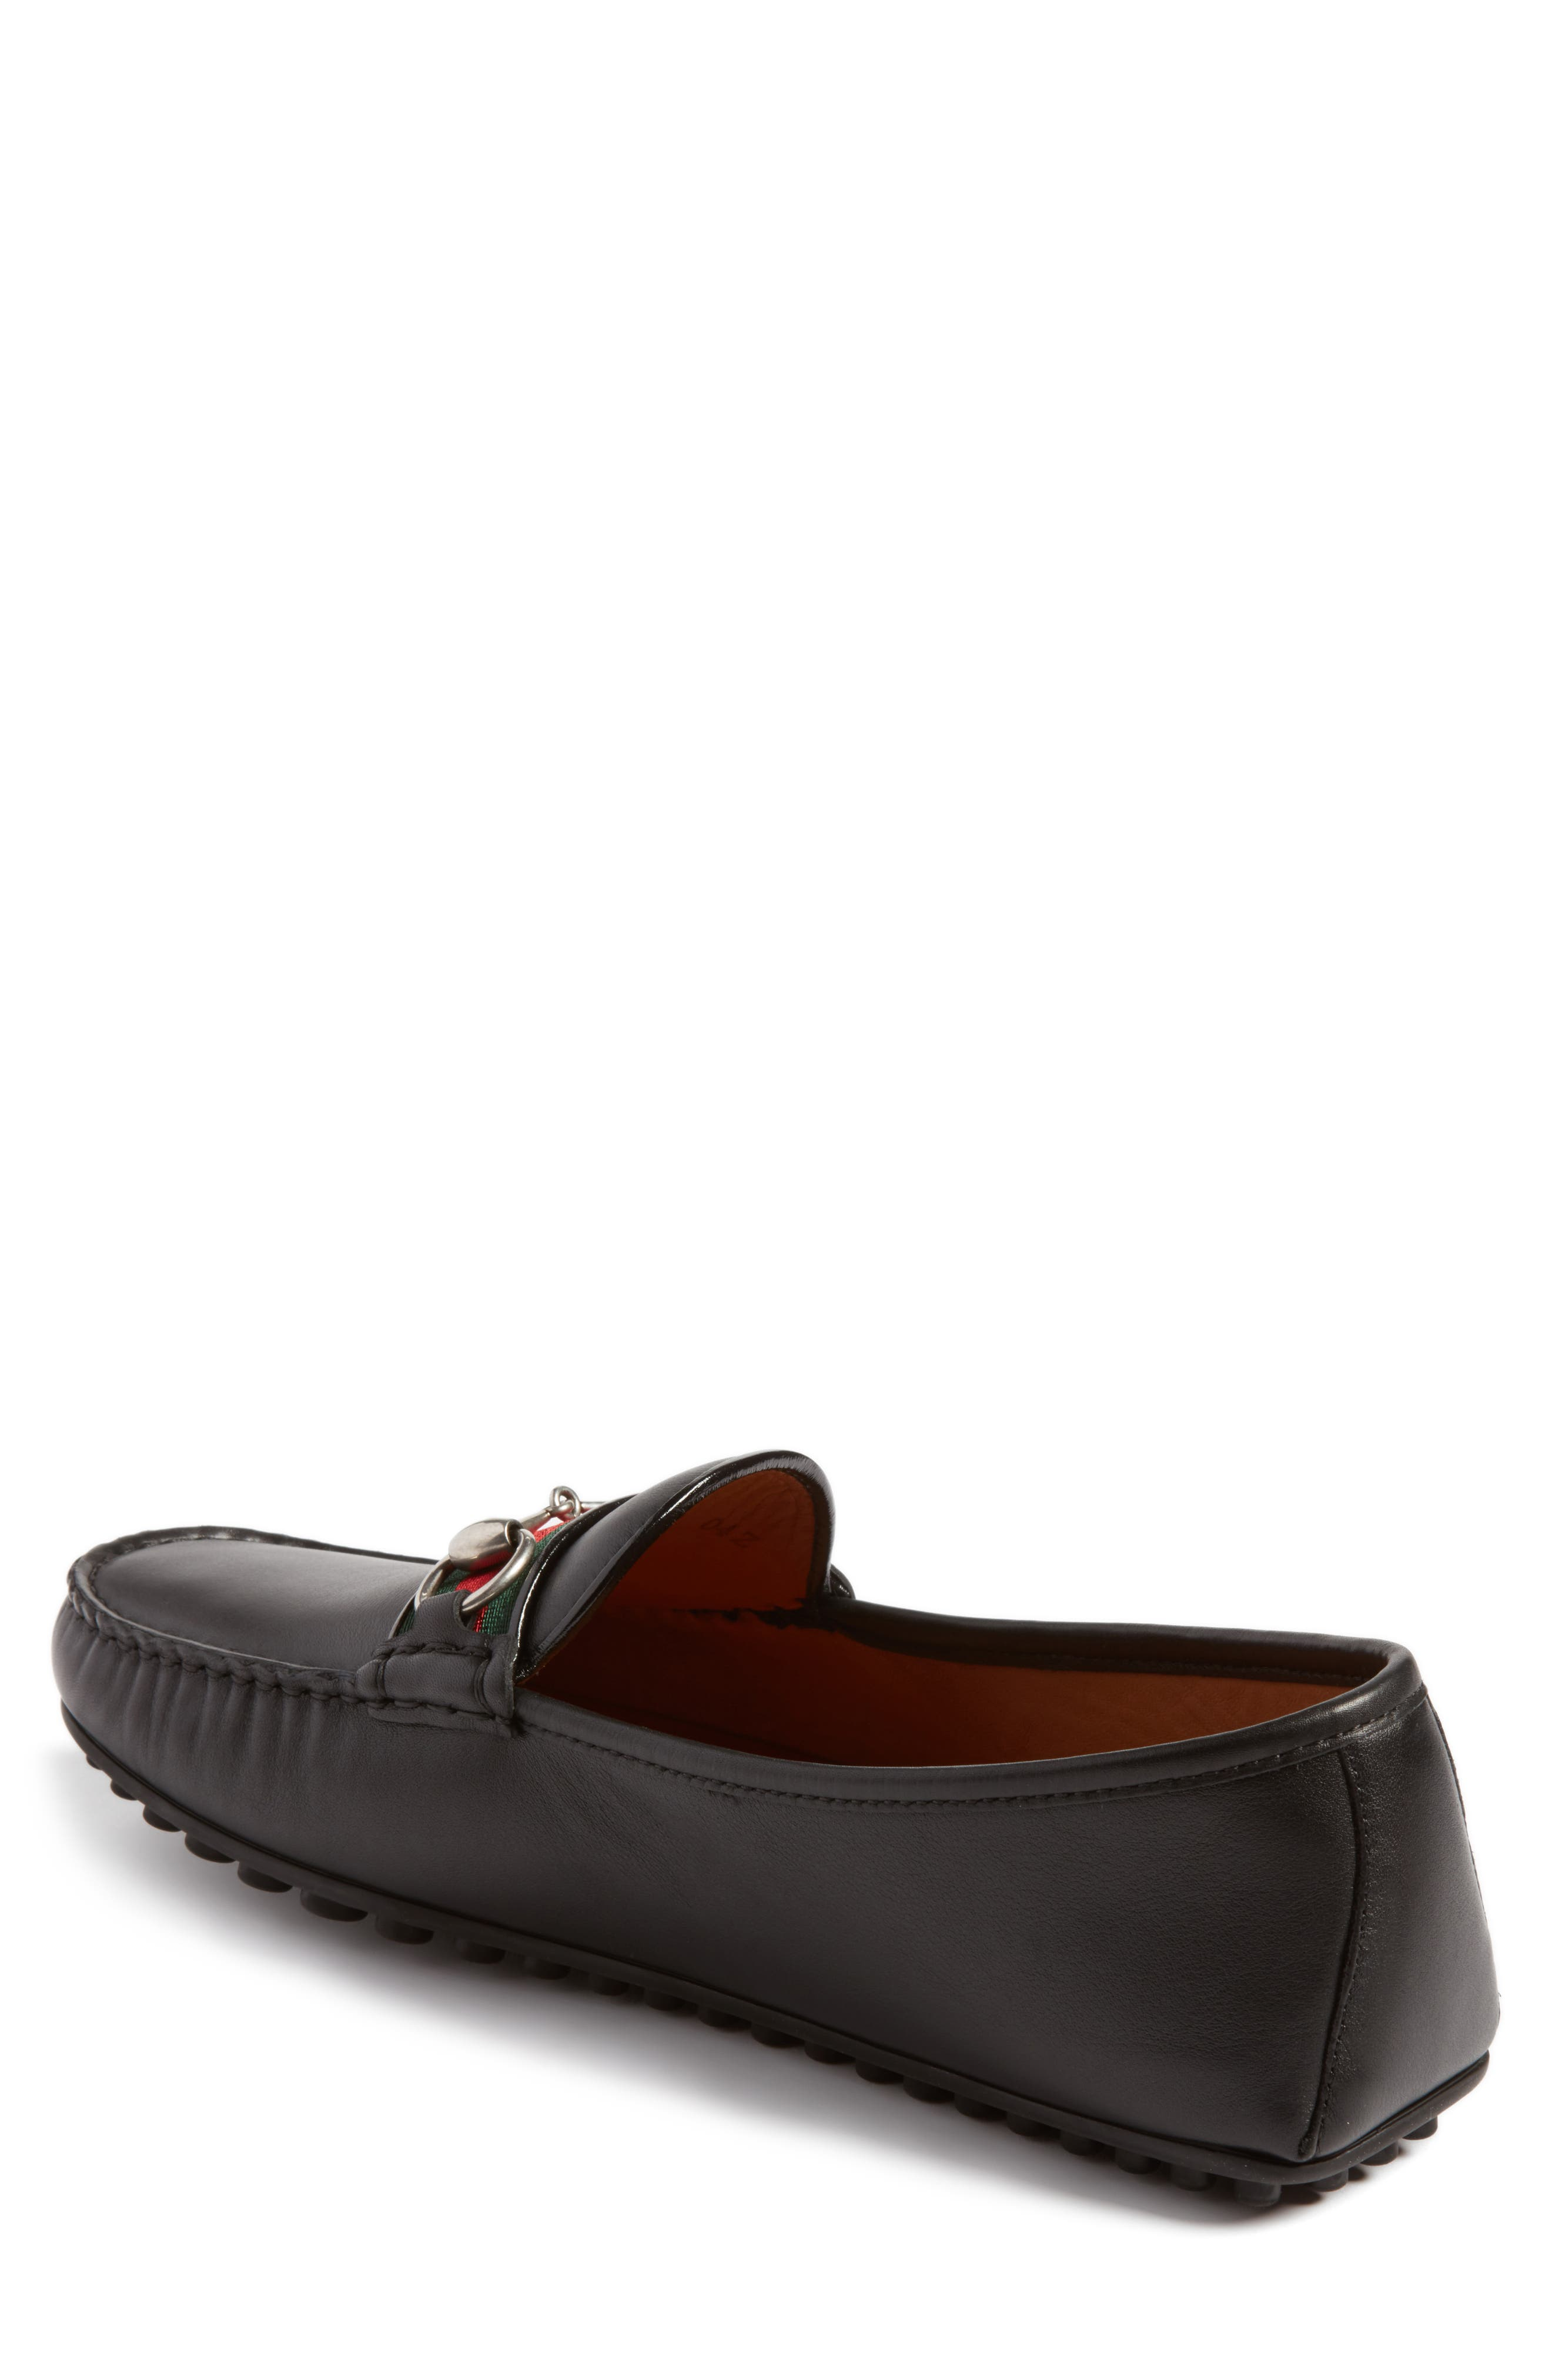 Kanye Bit Loafer,                             Alternate thumbnail 2, color,                             NERO LEATHER